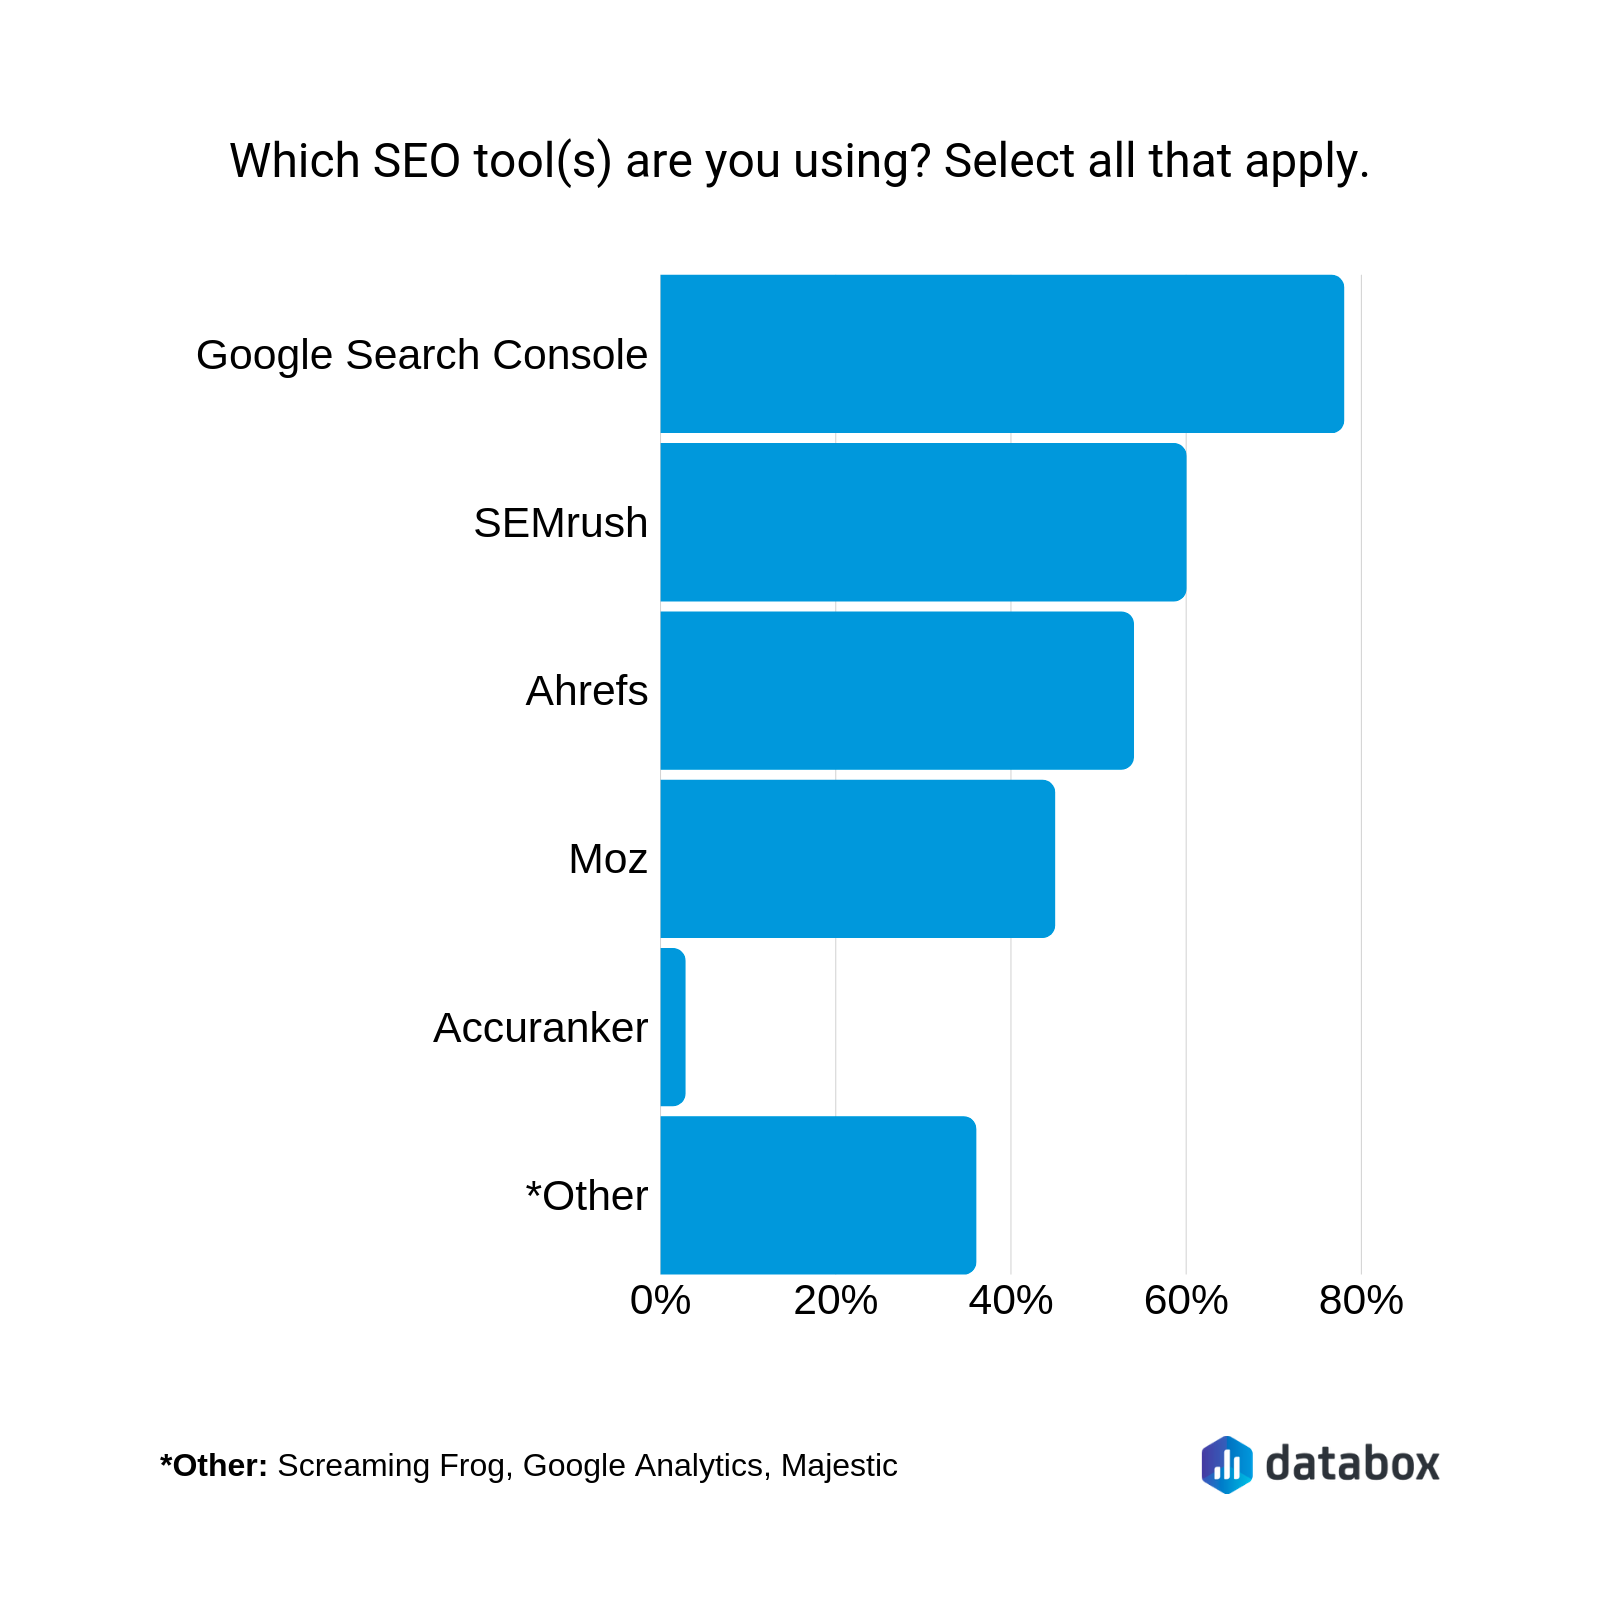 which SEO tool(s) are you using?